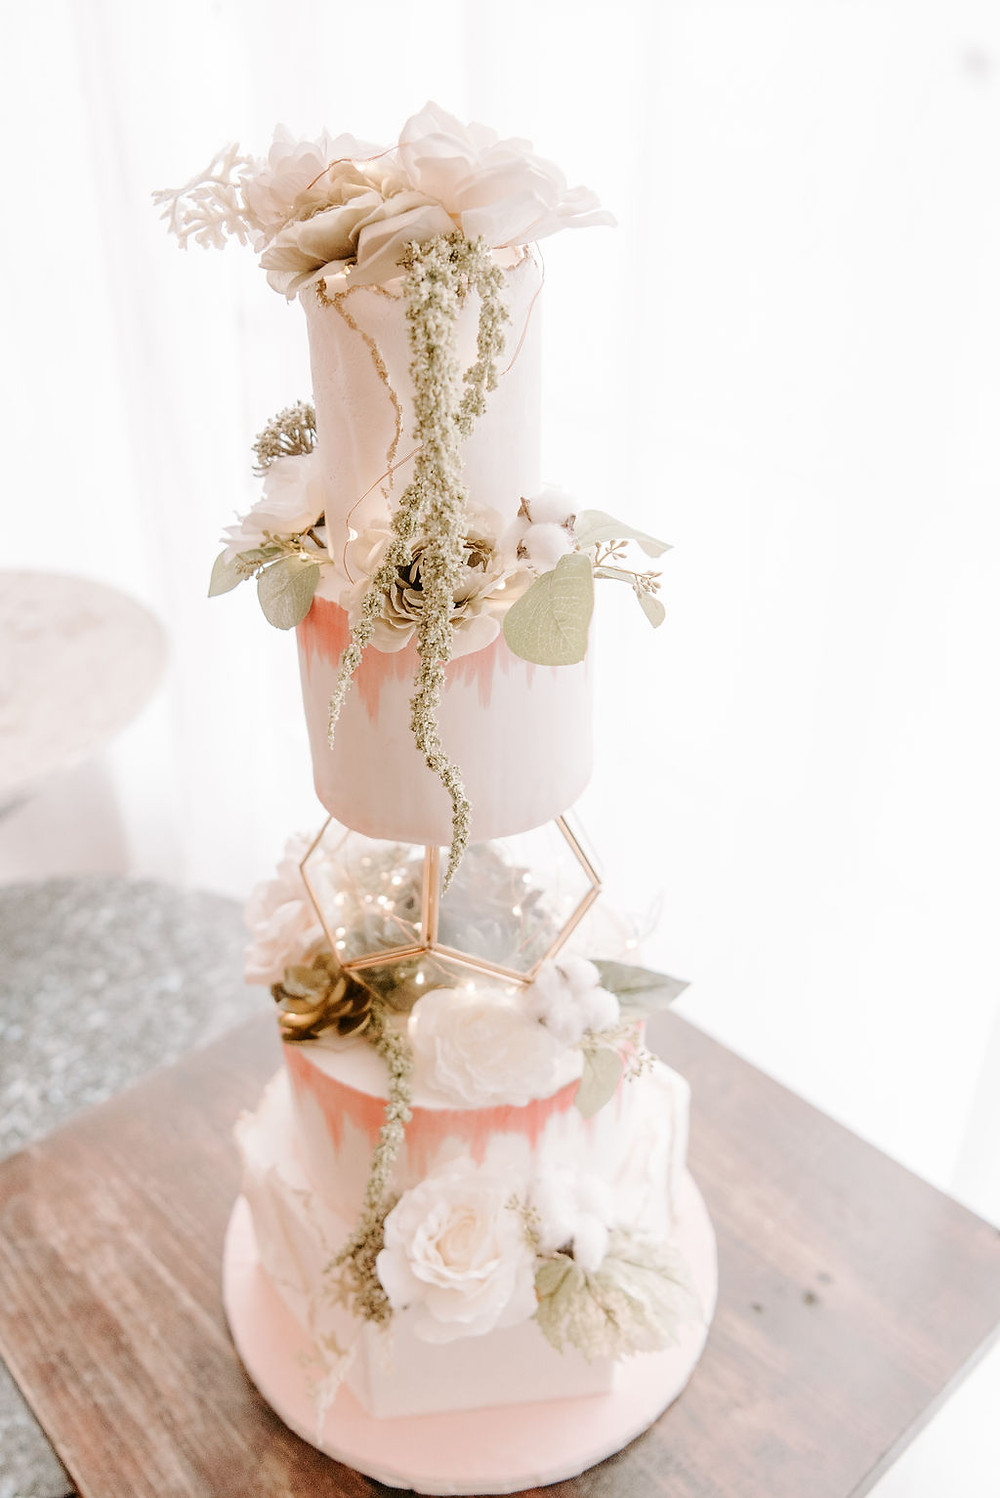 Wedding Cake by Chic Sugars. Photo by Wicked Petunia.